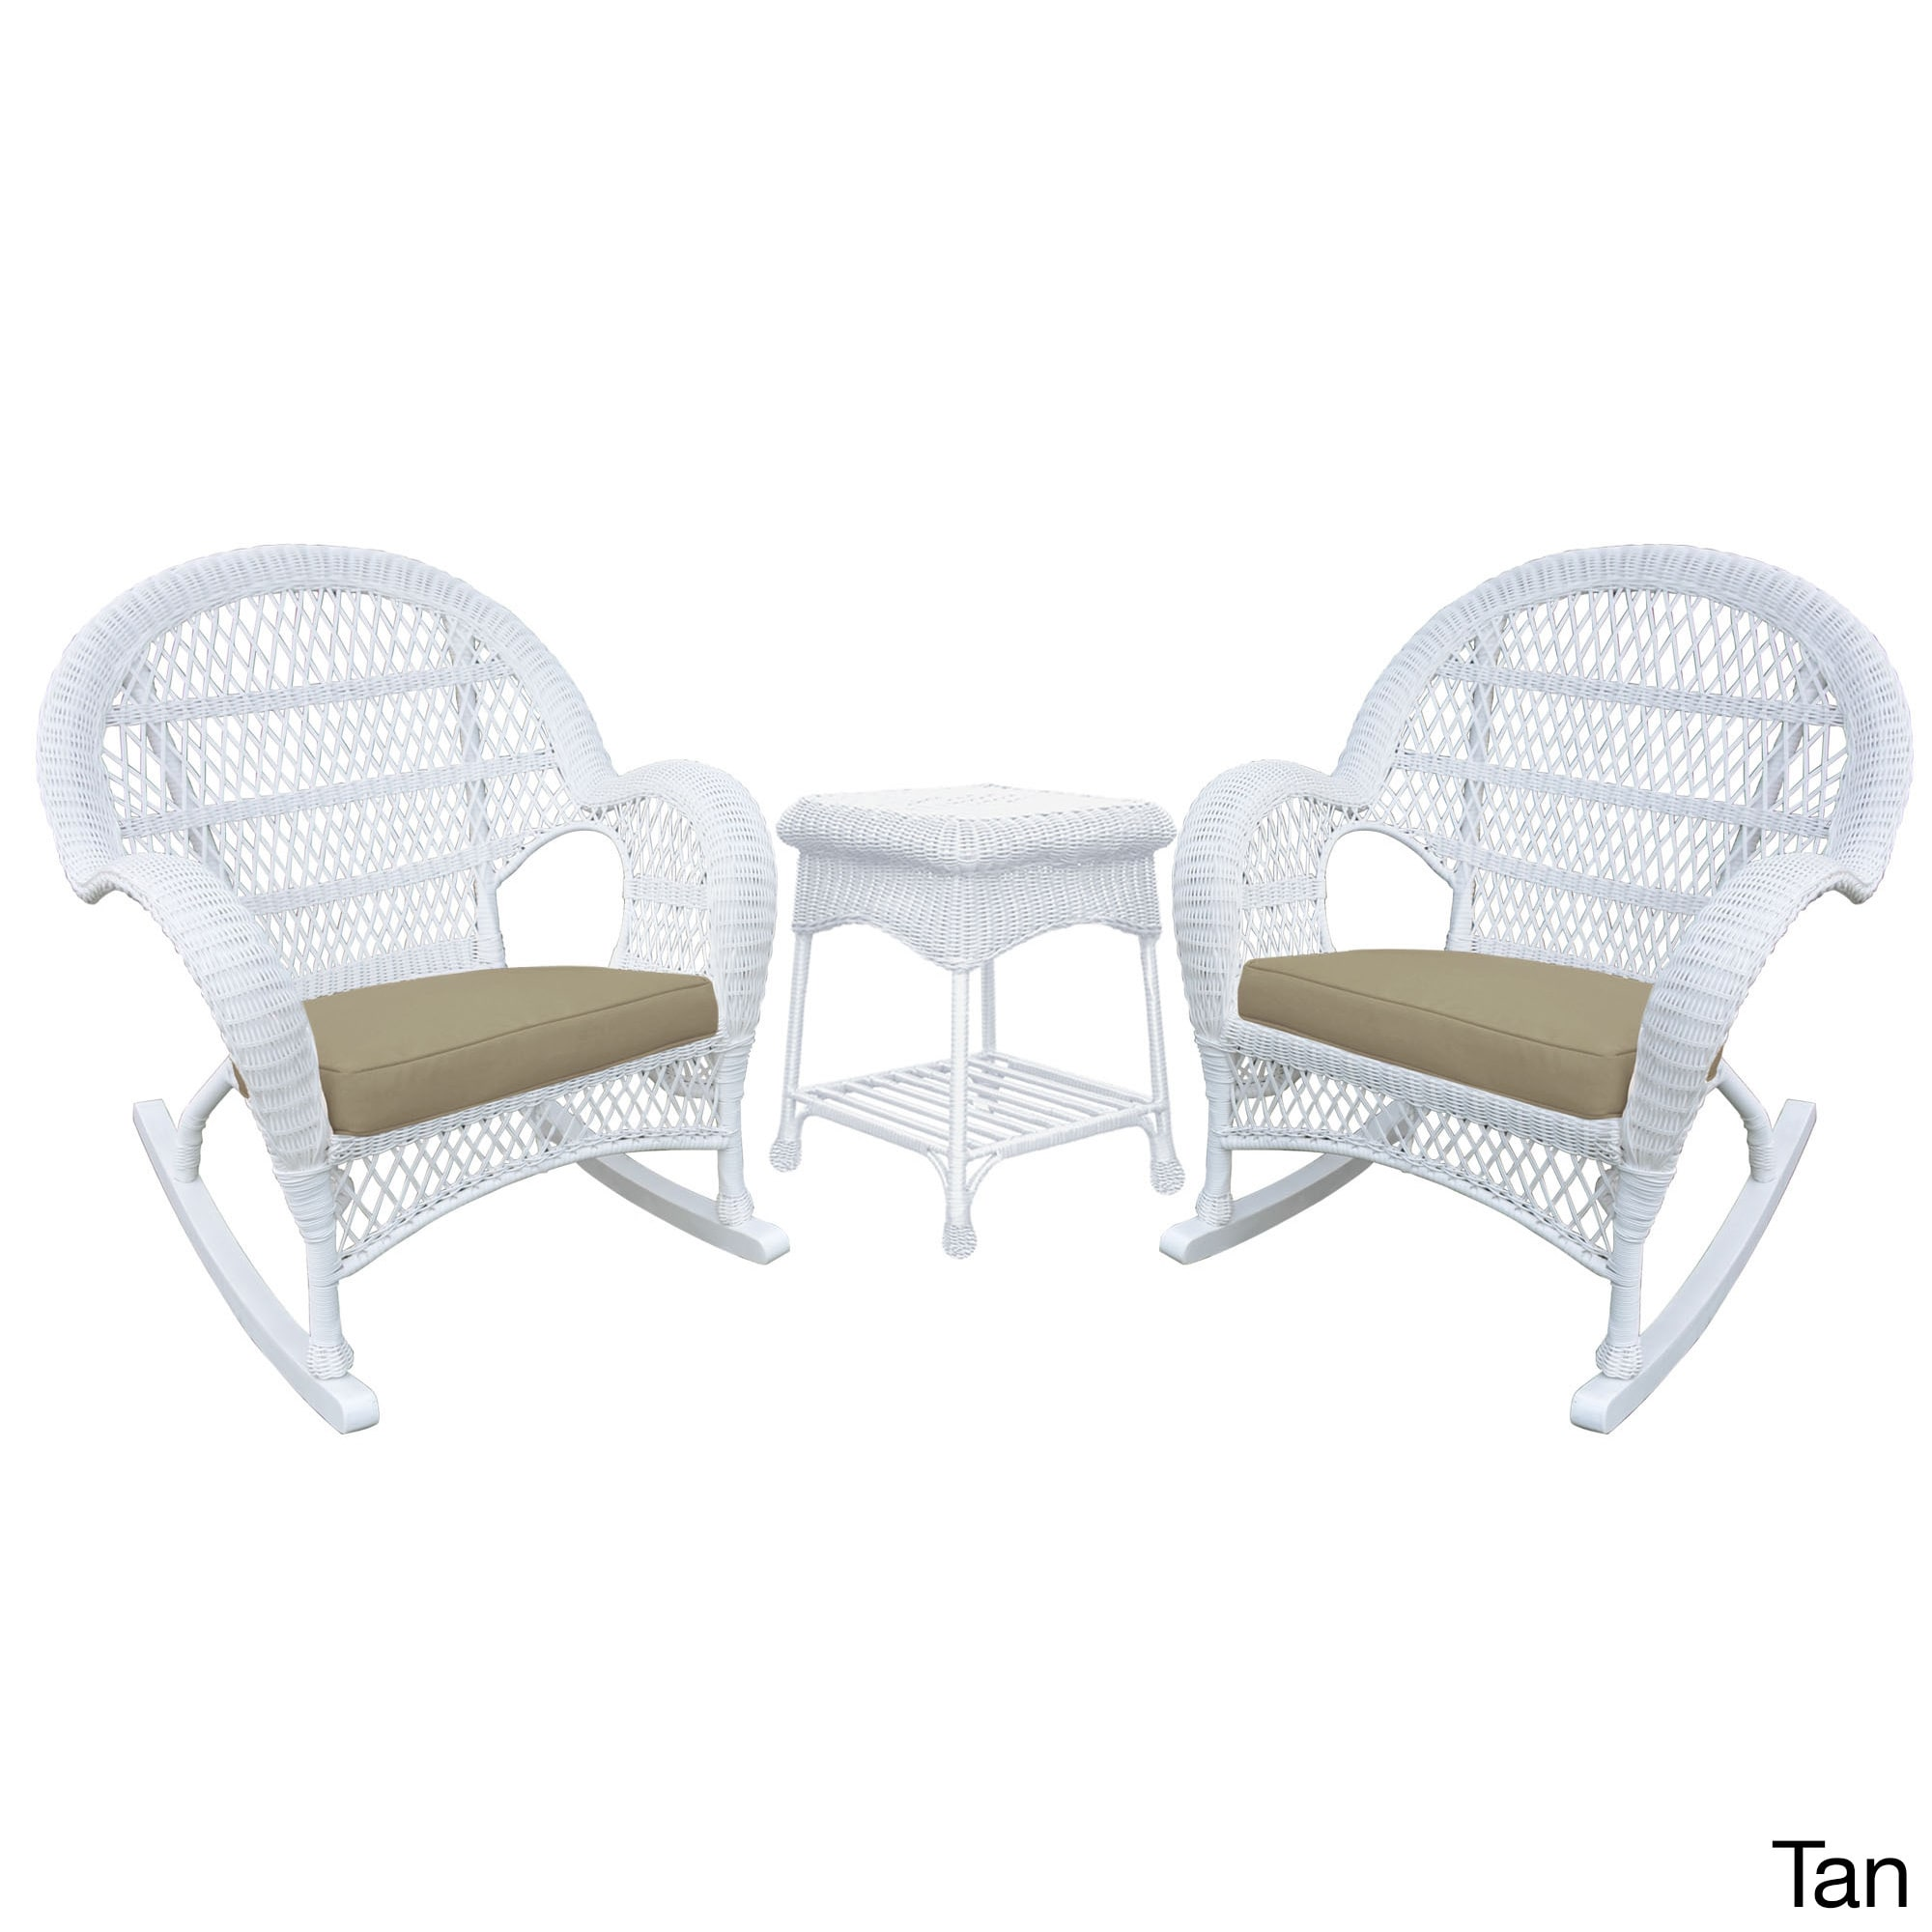 Jeco Santa Maria White Rocker Wicker Chair and End Table Set